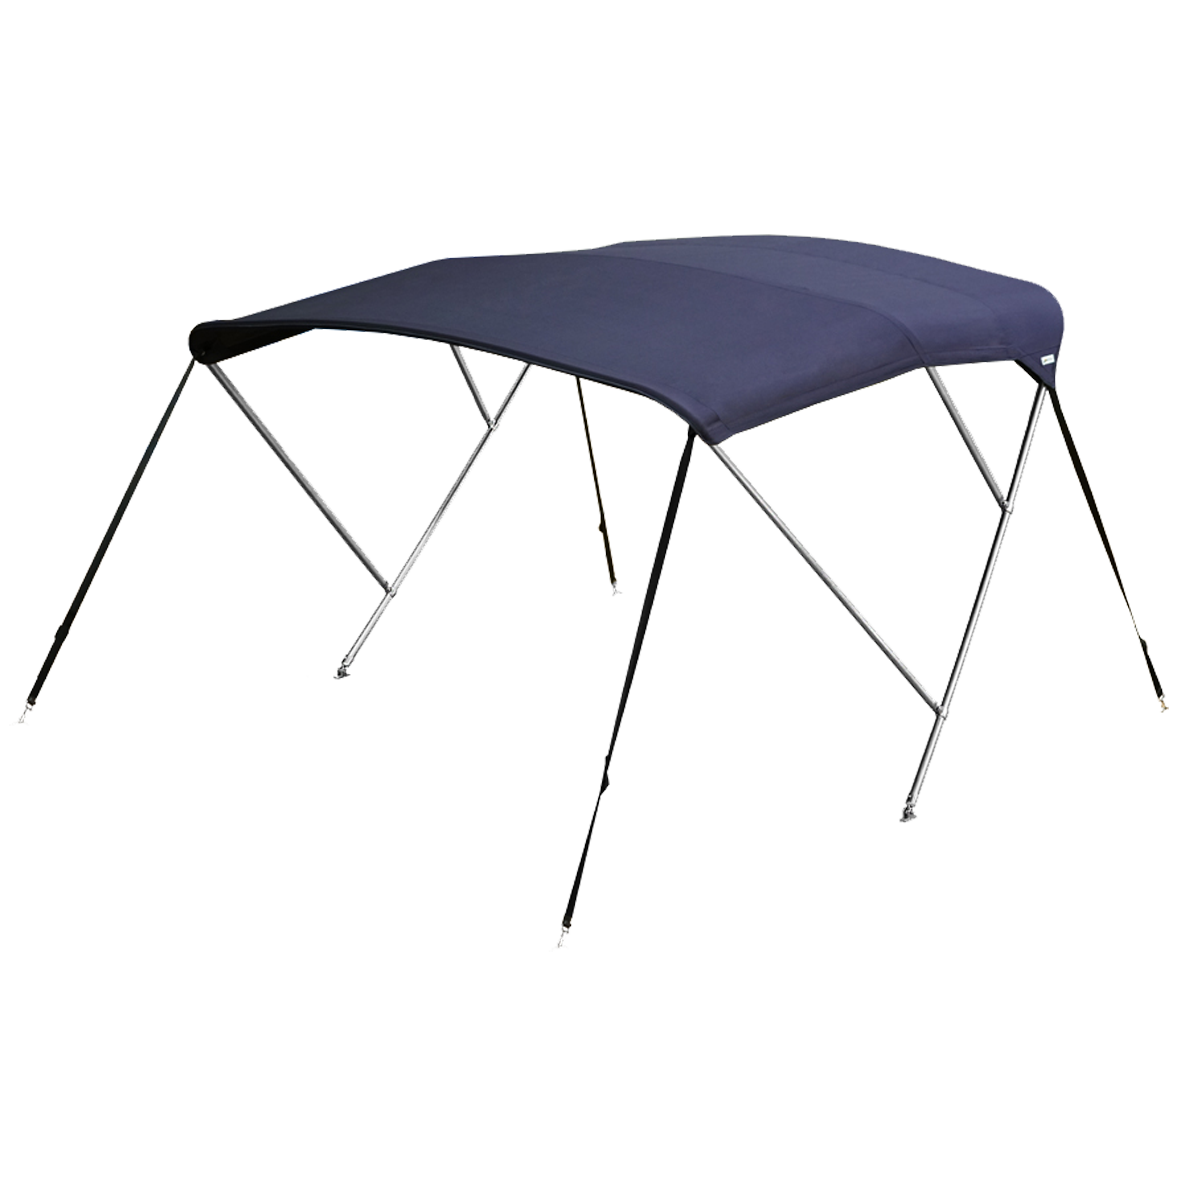 Stainless Steel 3 Bow Bimini Top Blue